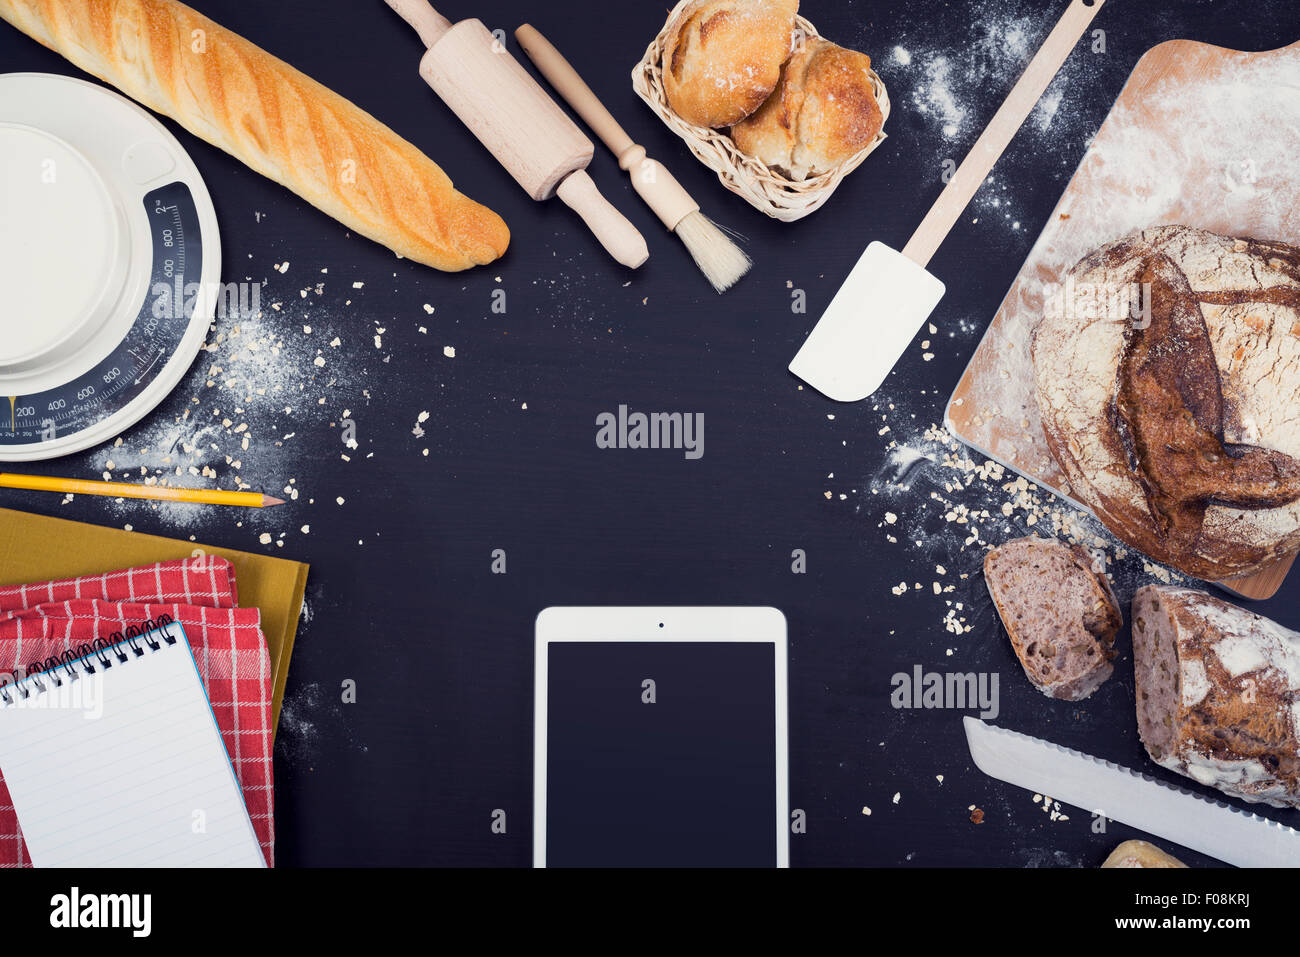 Bakery top view hero header image with copy space - Stock Image